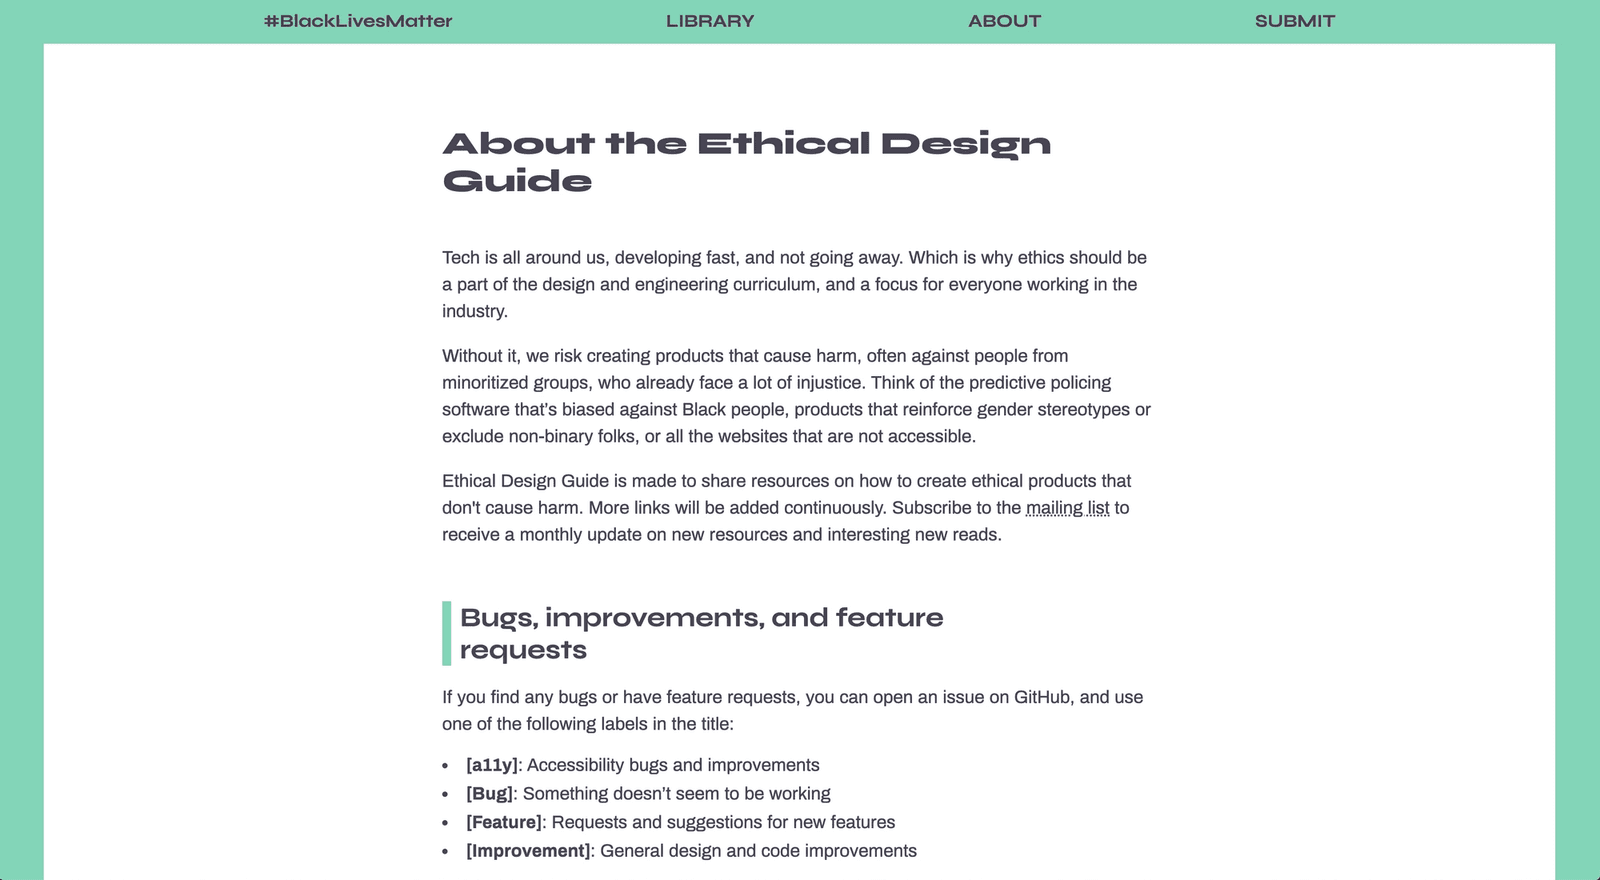 ethicaldesign.guide/about: Green border around the page, description in the centre.